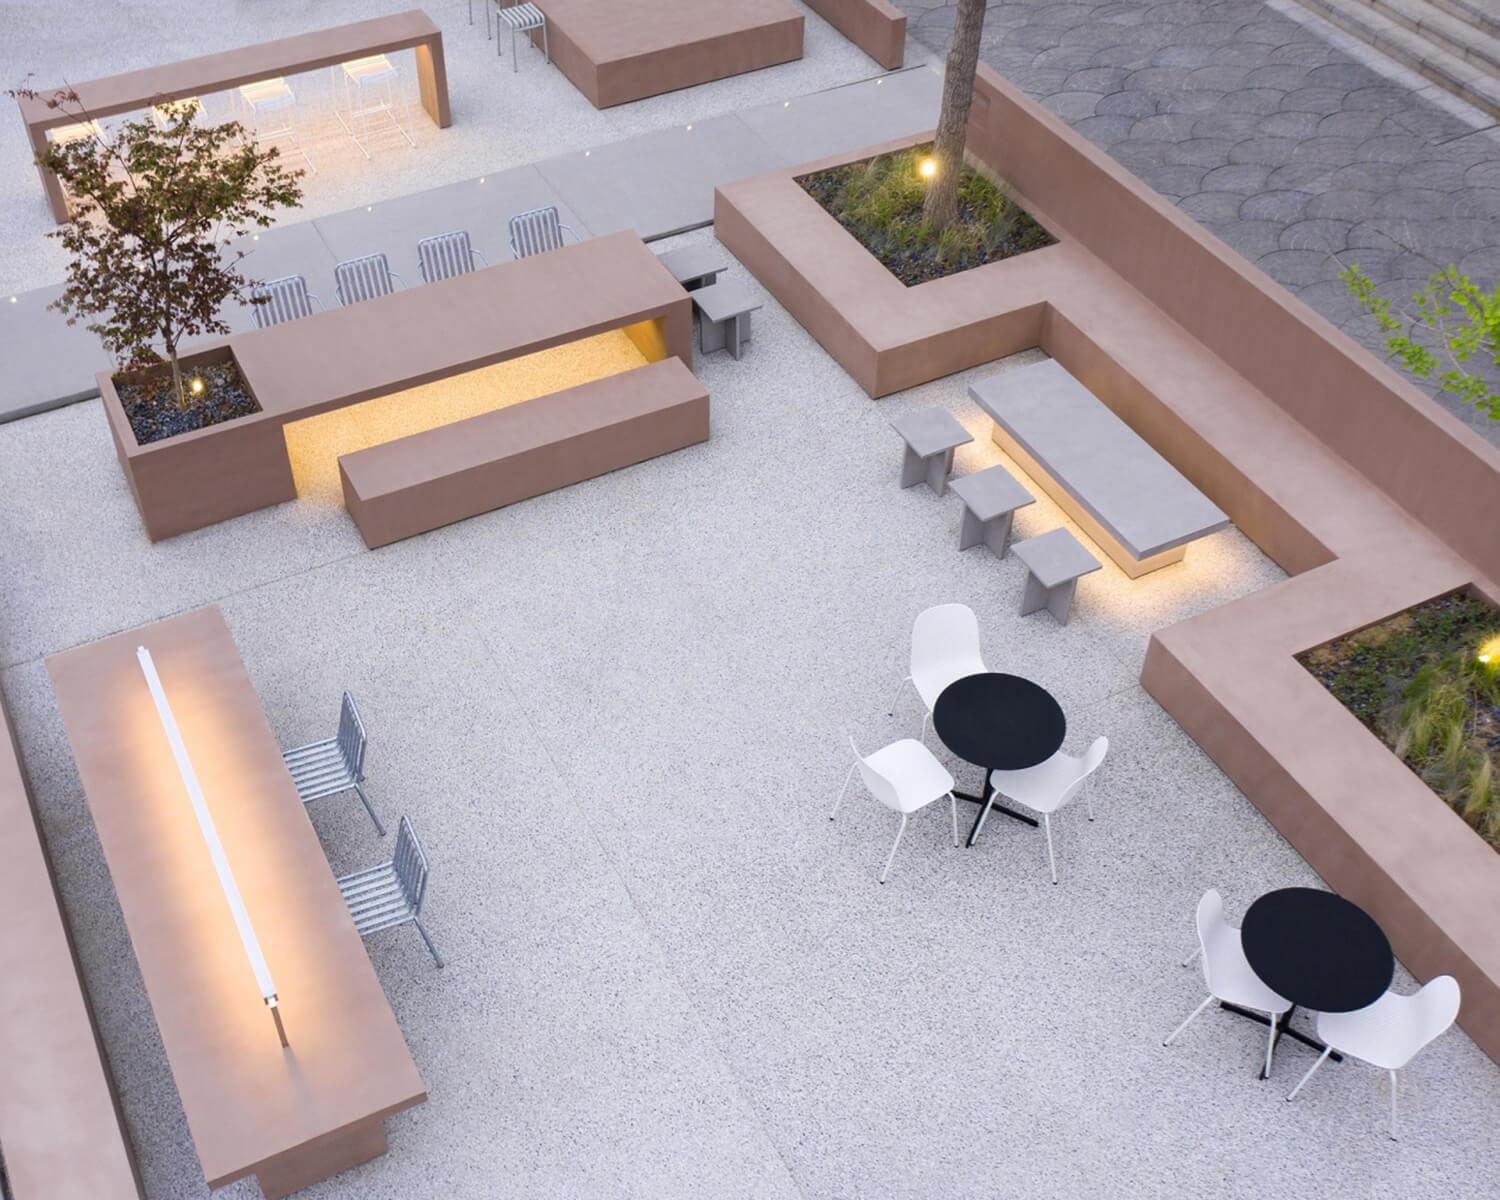 View of the outdoor seating area from above